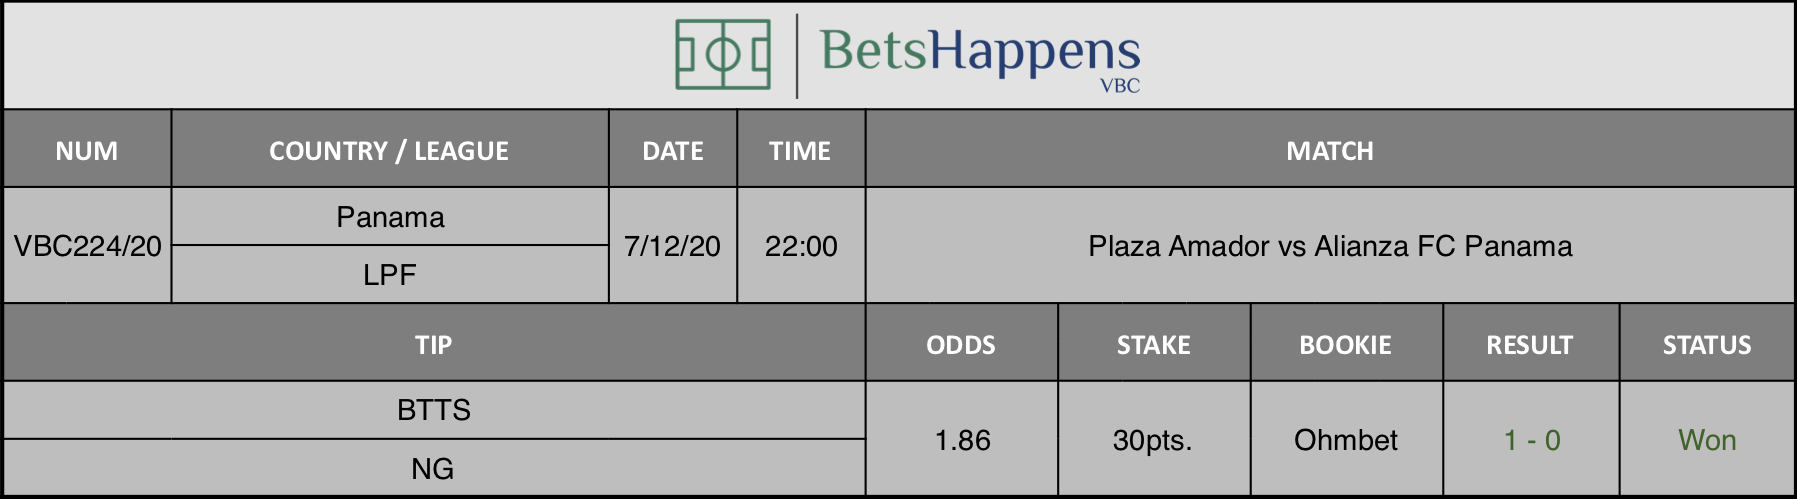 Results of our tip for the Plaza Amador vs Alianza FC Panama match where BTTS NG is recommended.